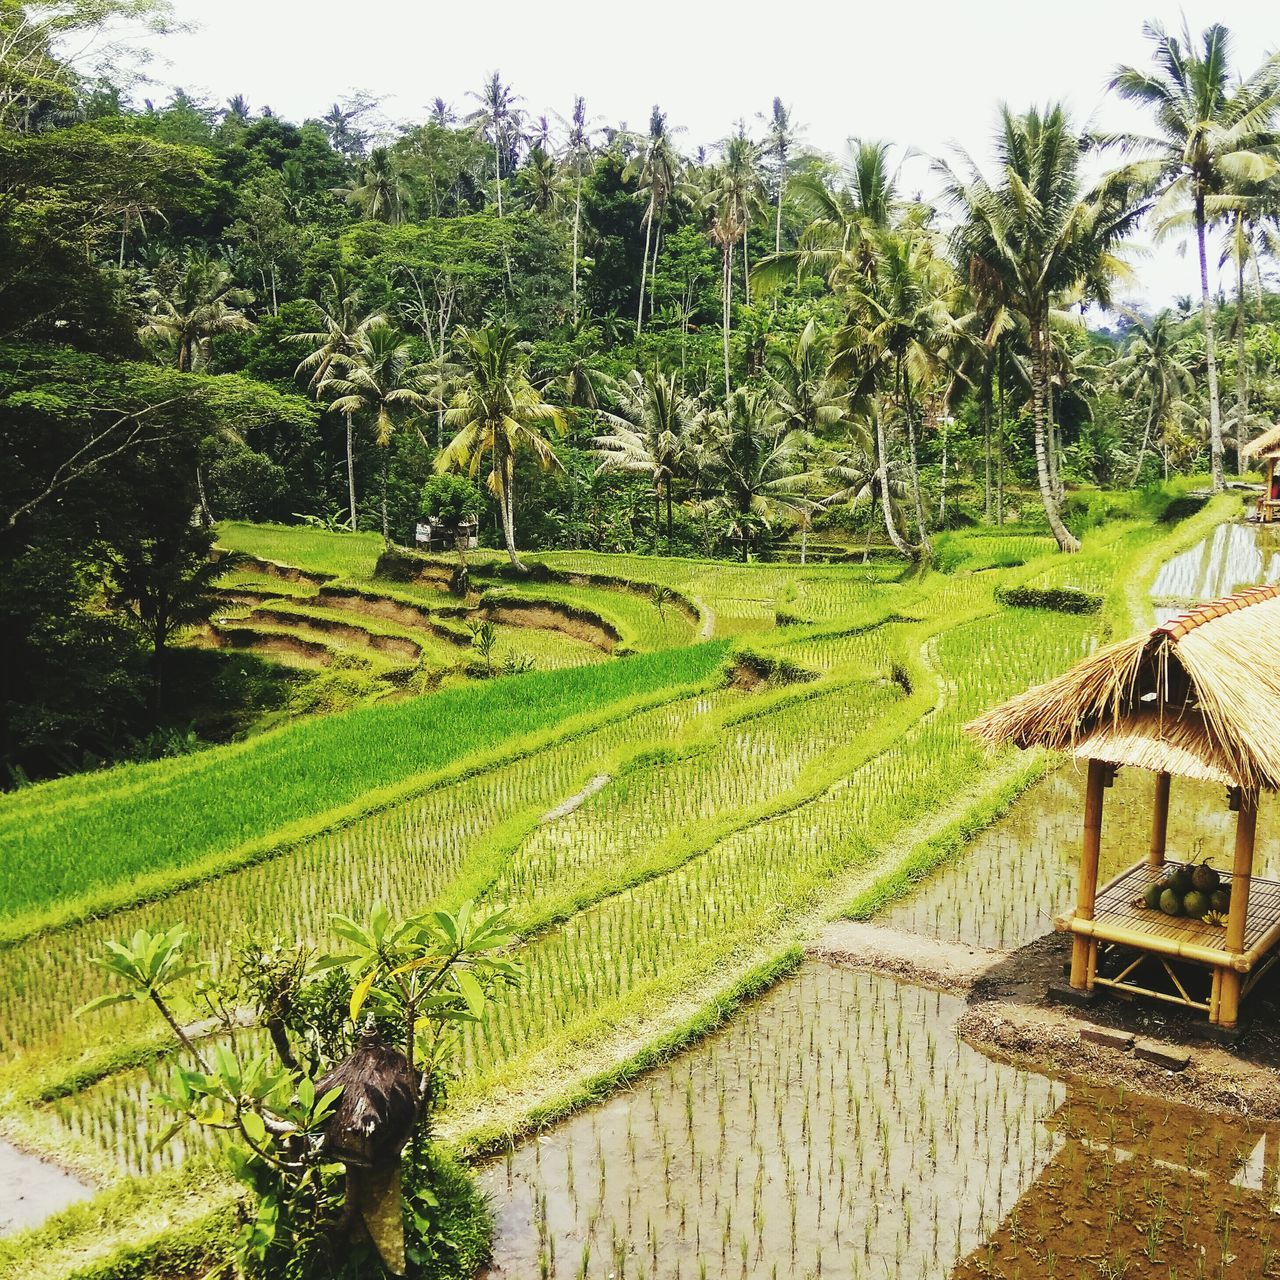 Growth Nature Green Color Beauty In Nature Tranquility Scenics Outdoors No People Ubud Ubud, Bali Balinese Culture Rice Field Rocky Temple INDONESIA